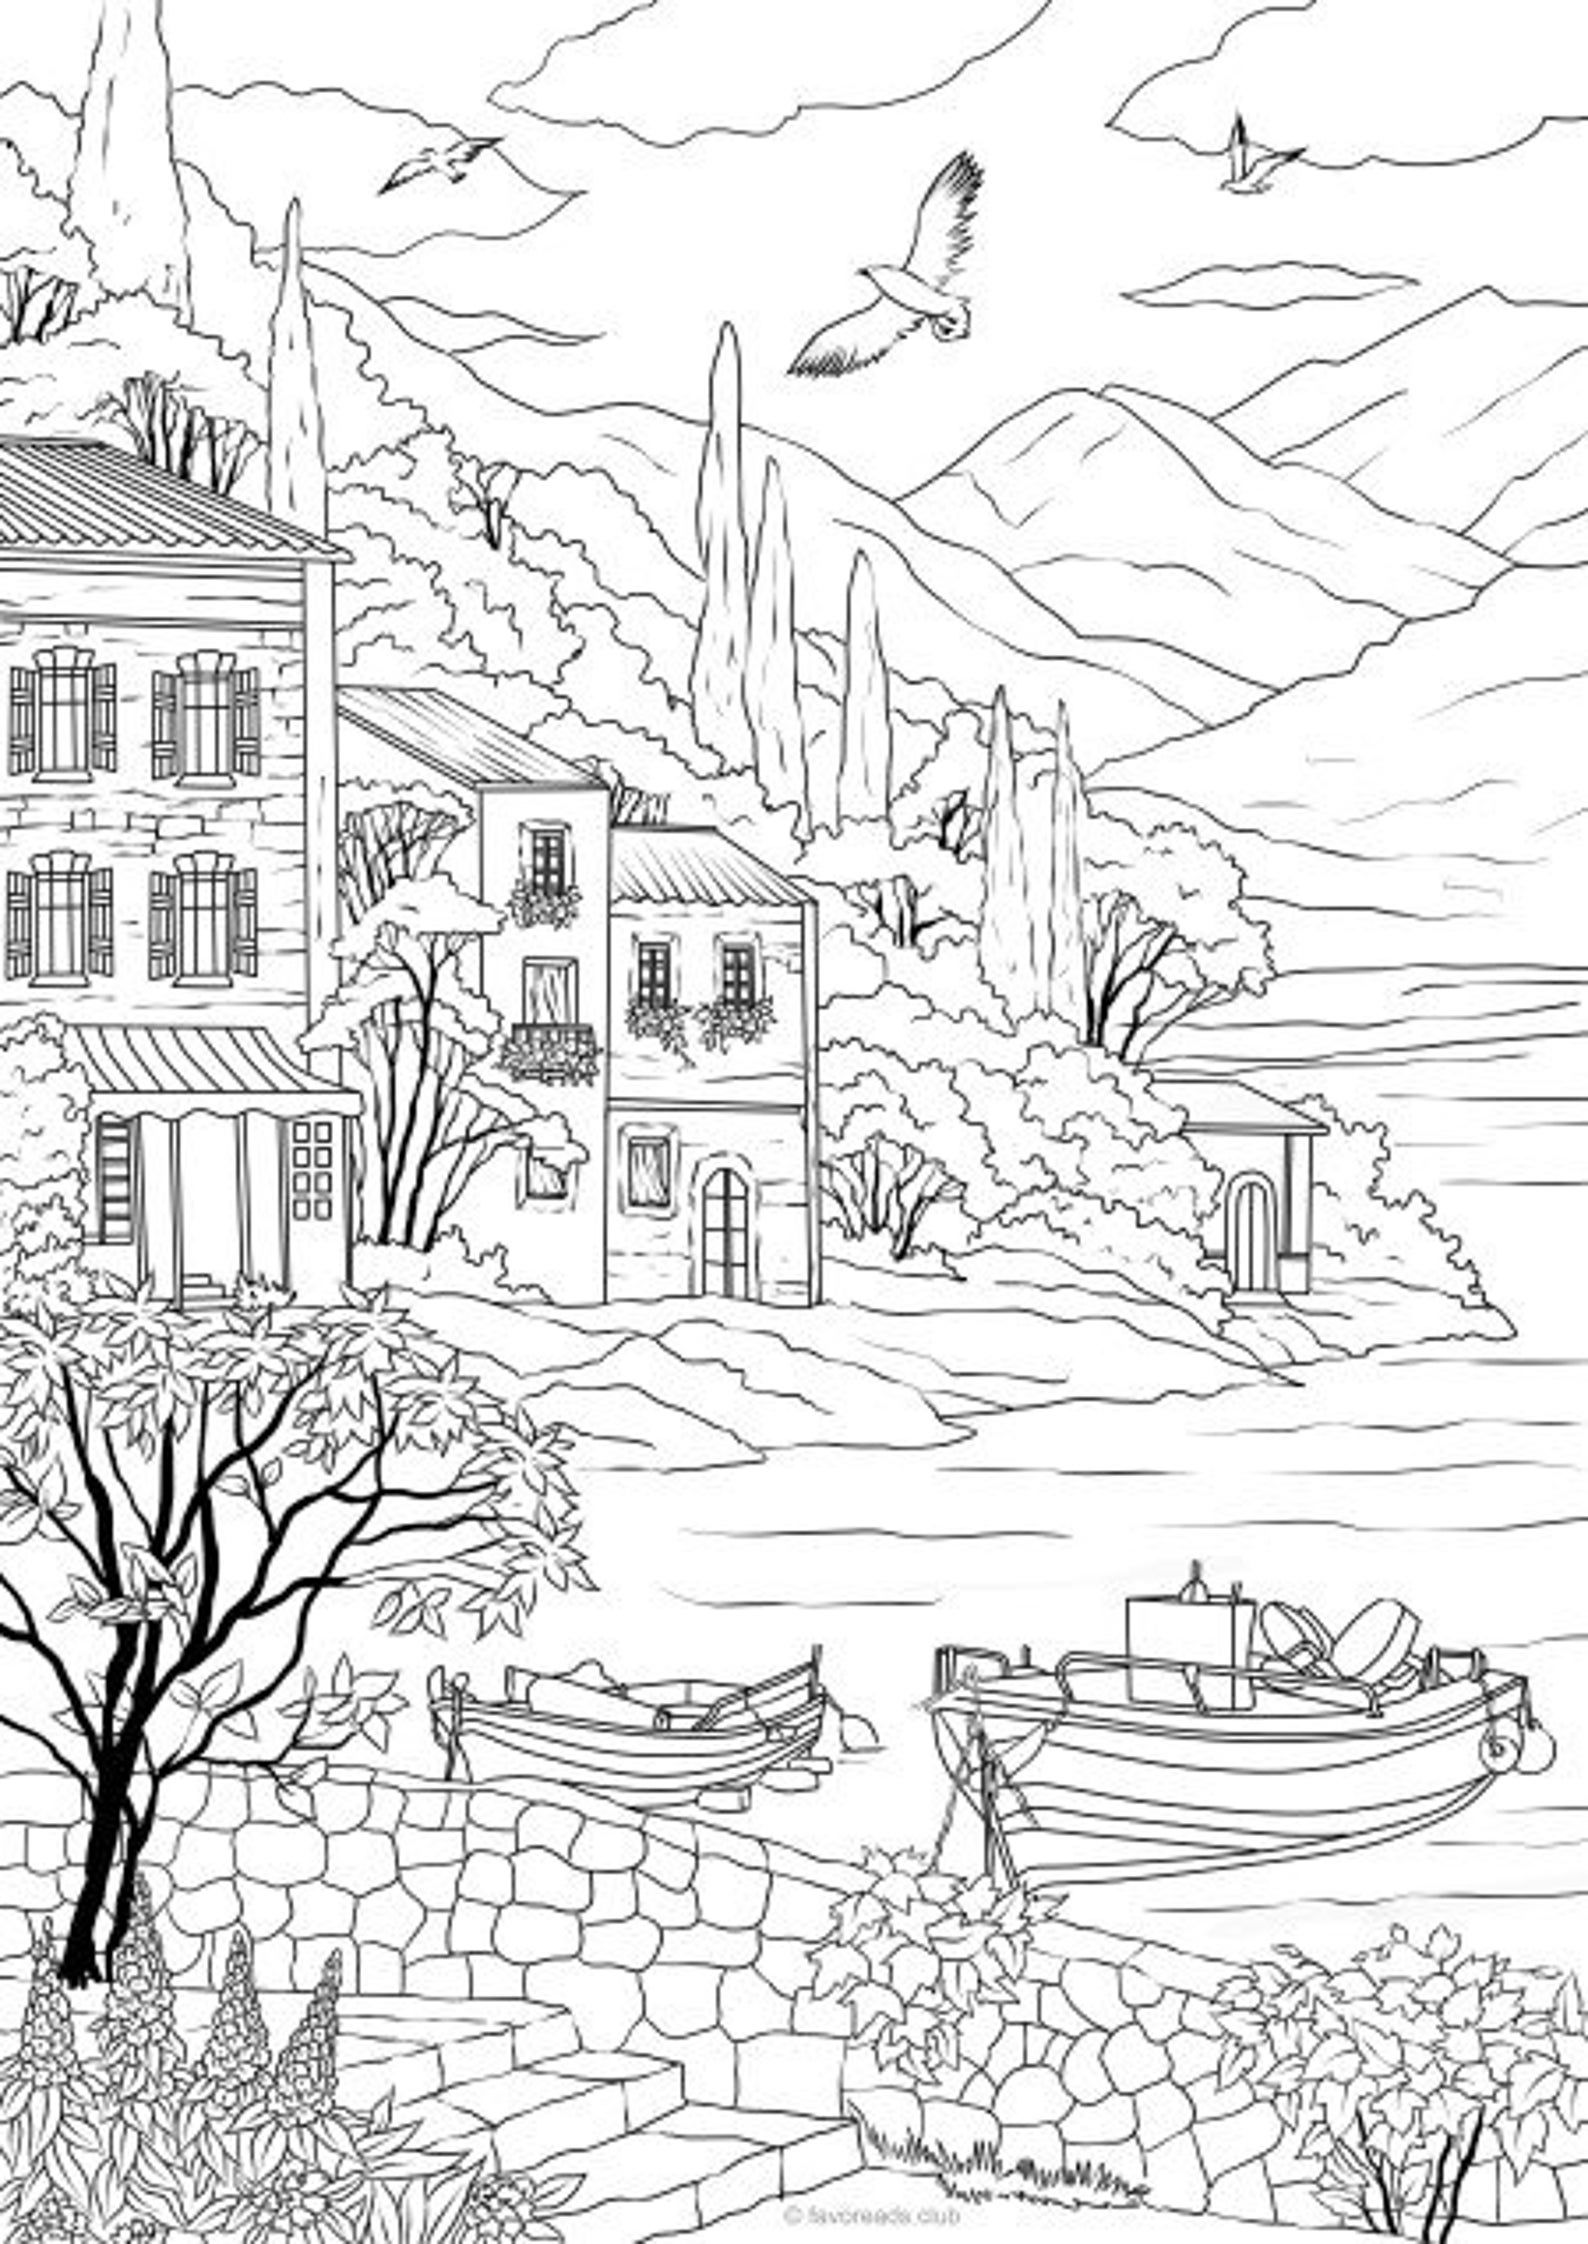 Sea Coast Printable Adult Coloring Page From Favoreads Coloring Book Pages For Adults And Kids Coloring Sheets Coloring Designs In 2020 Printable Adult Coloring Pages Printable Adult Coloring Coloring Pages